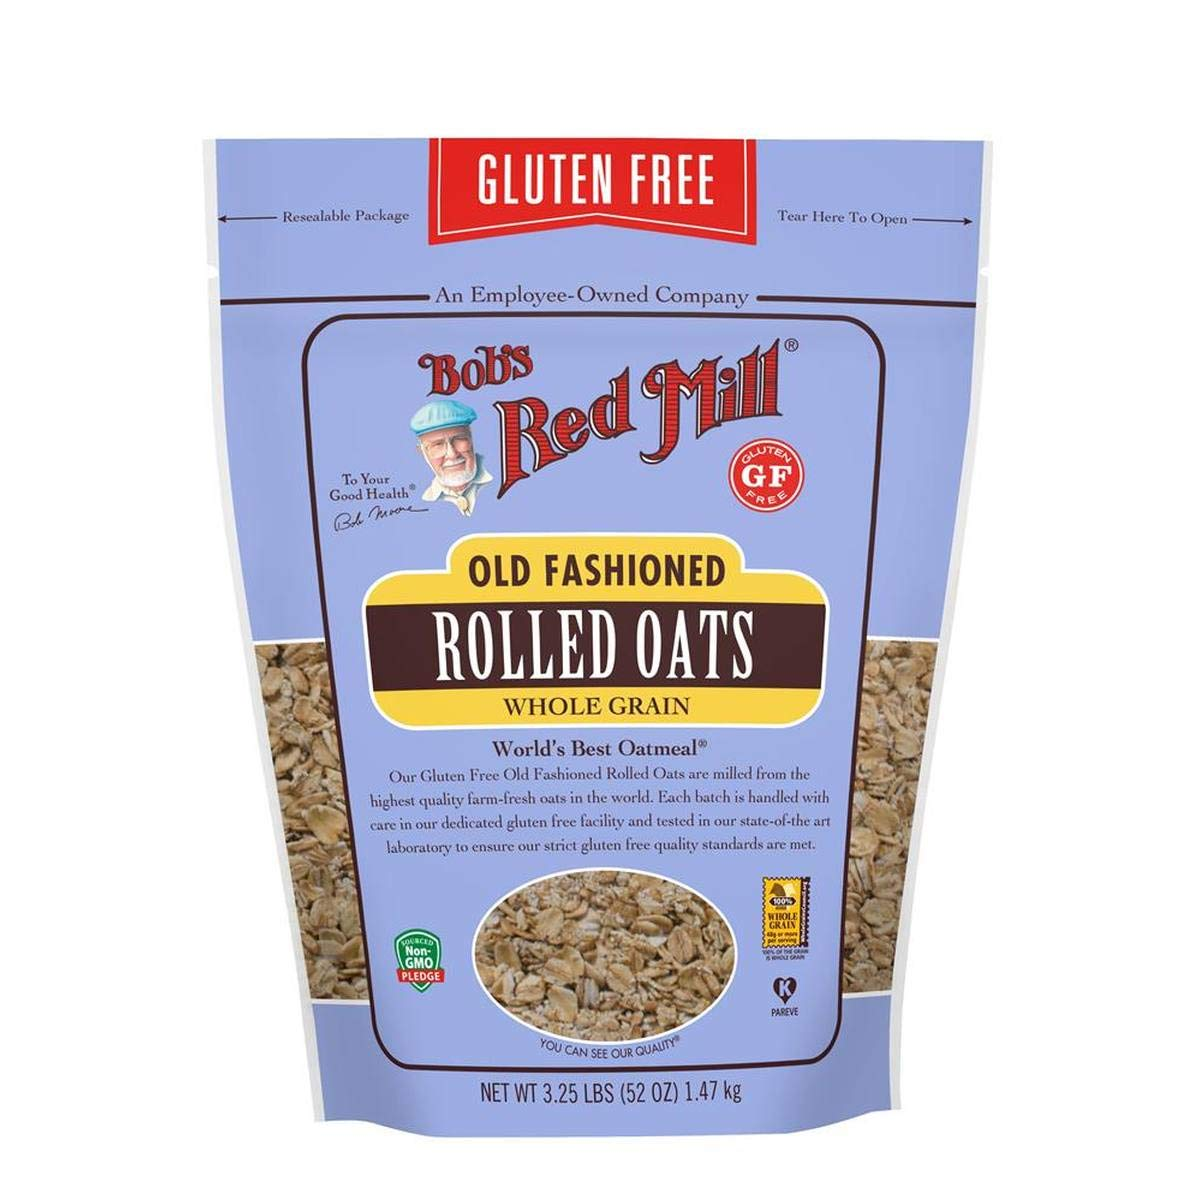 Bob's Red Mill Resealable Gluten Free Old Fashioned Rolled Oats, 52 Oz (4 Pack) by Bob's Red Mill